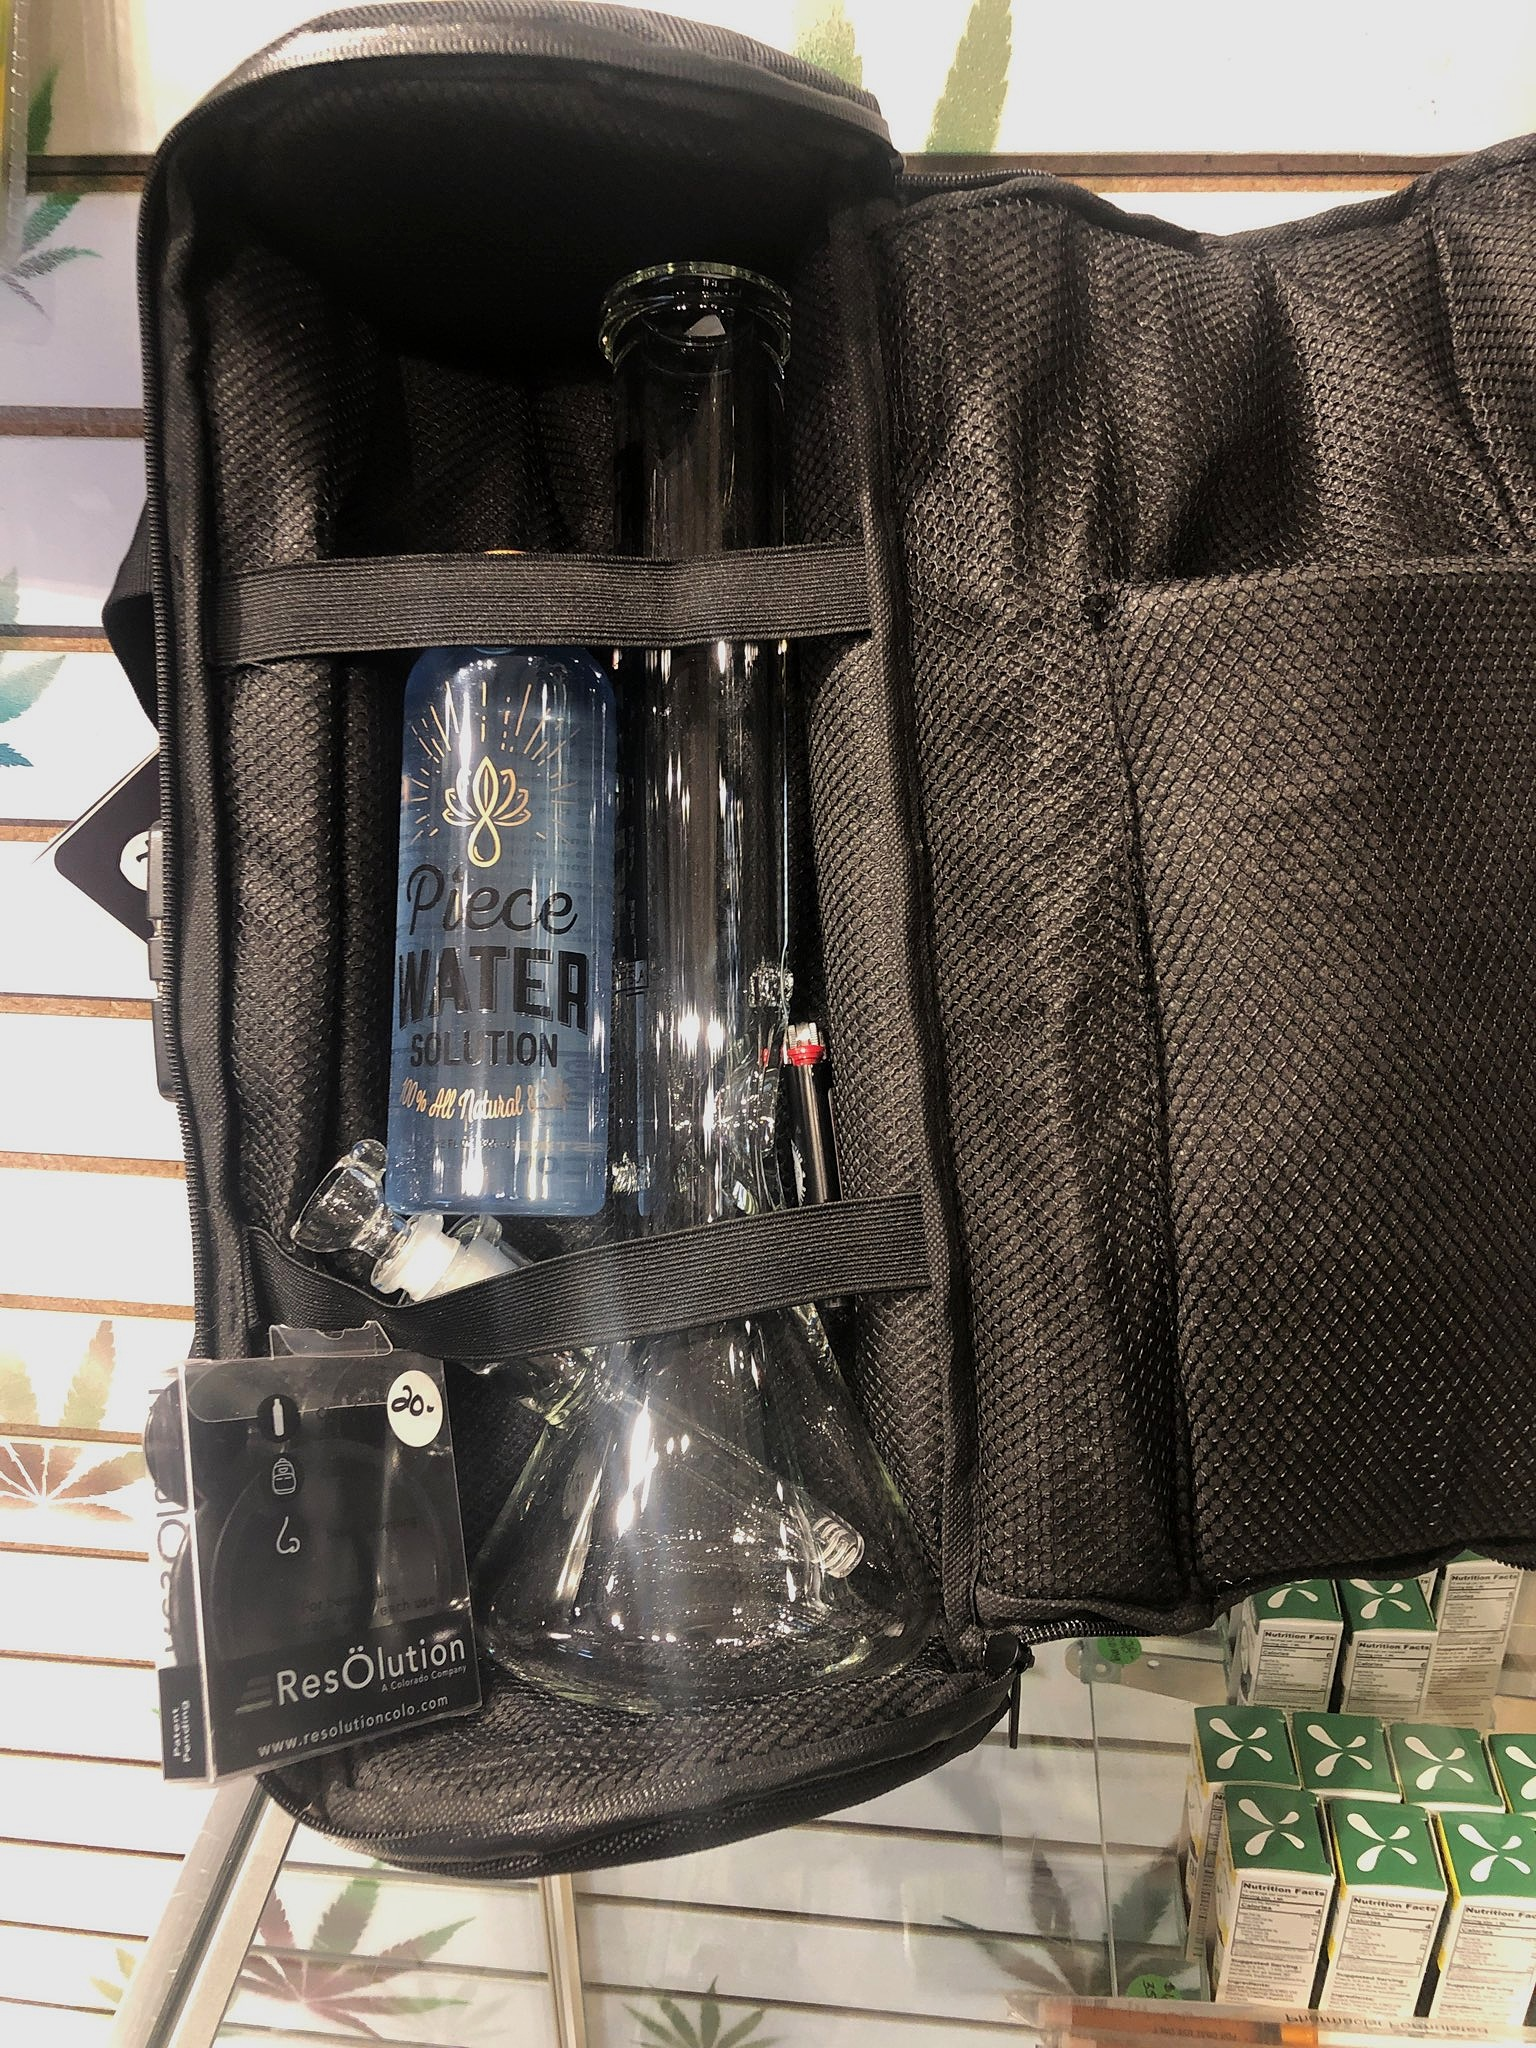 Bong & Dab Rig Rentals - Experience the finest glass first hand featuring standard bong, percolator bong, and dab rig rentals.